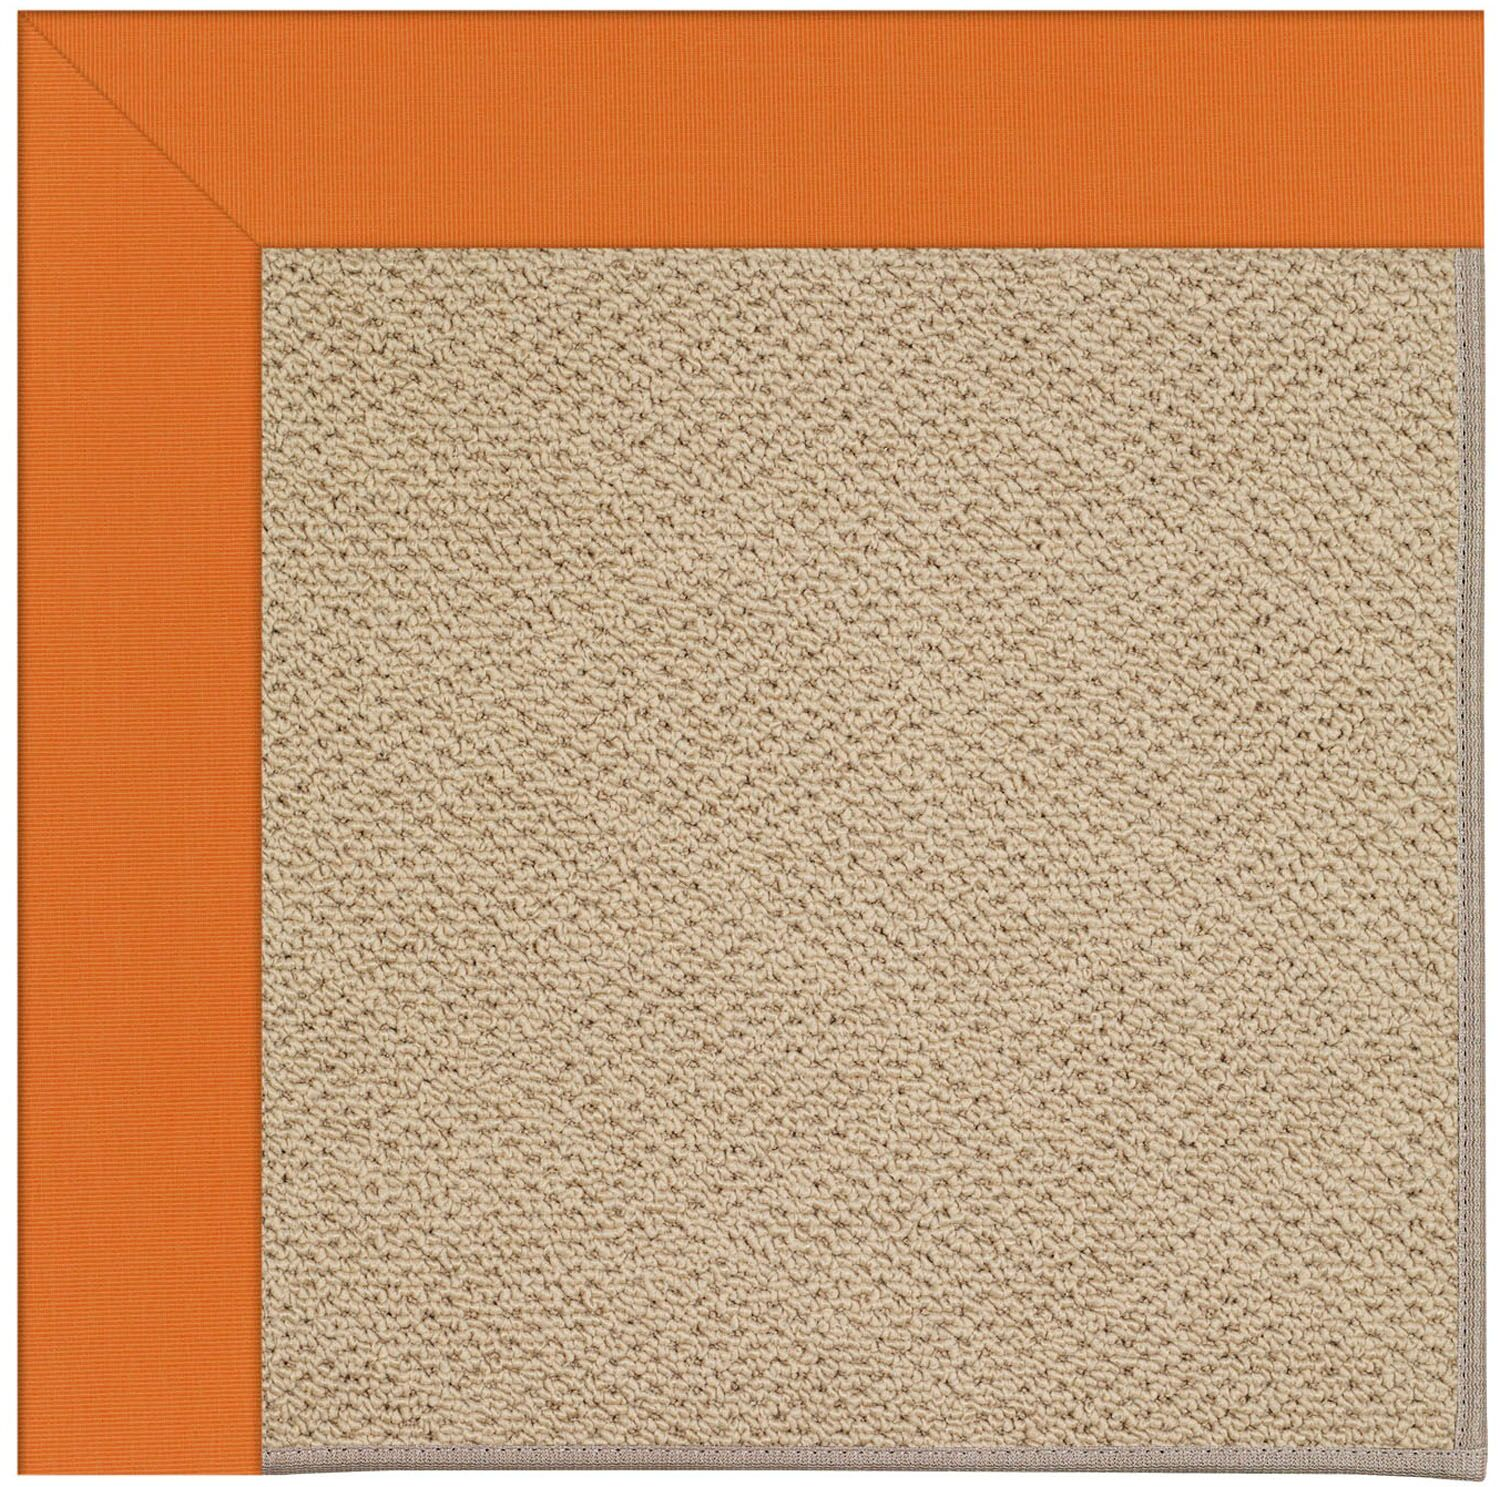 Lisle Machine Tufted Clementine Indoor/Outdoor Area Rug Rug Size: Rectangle 10' x 14'